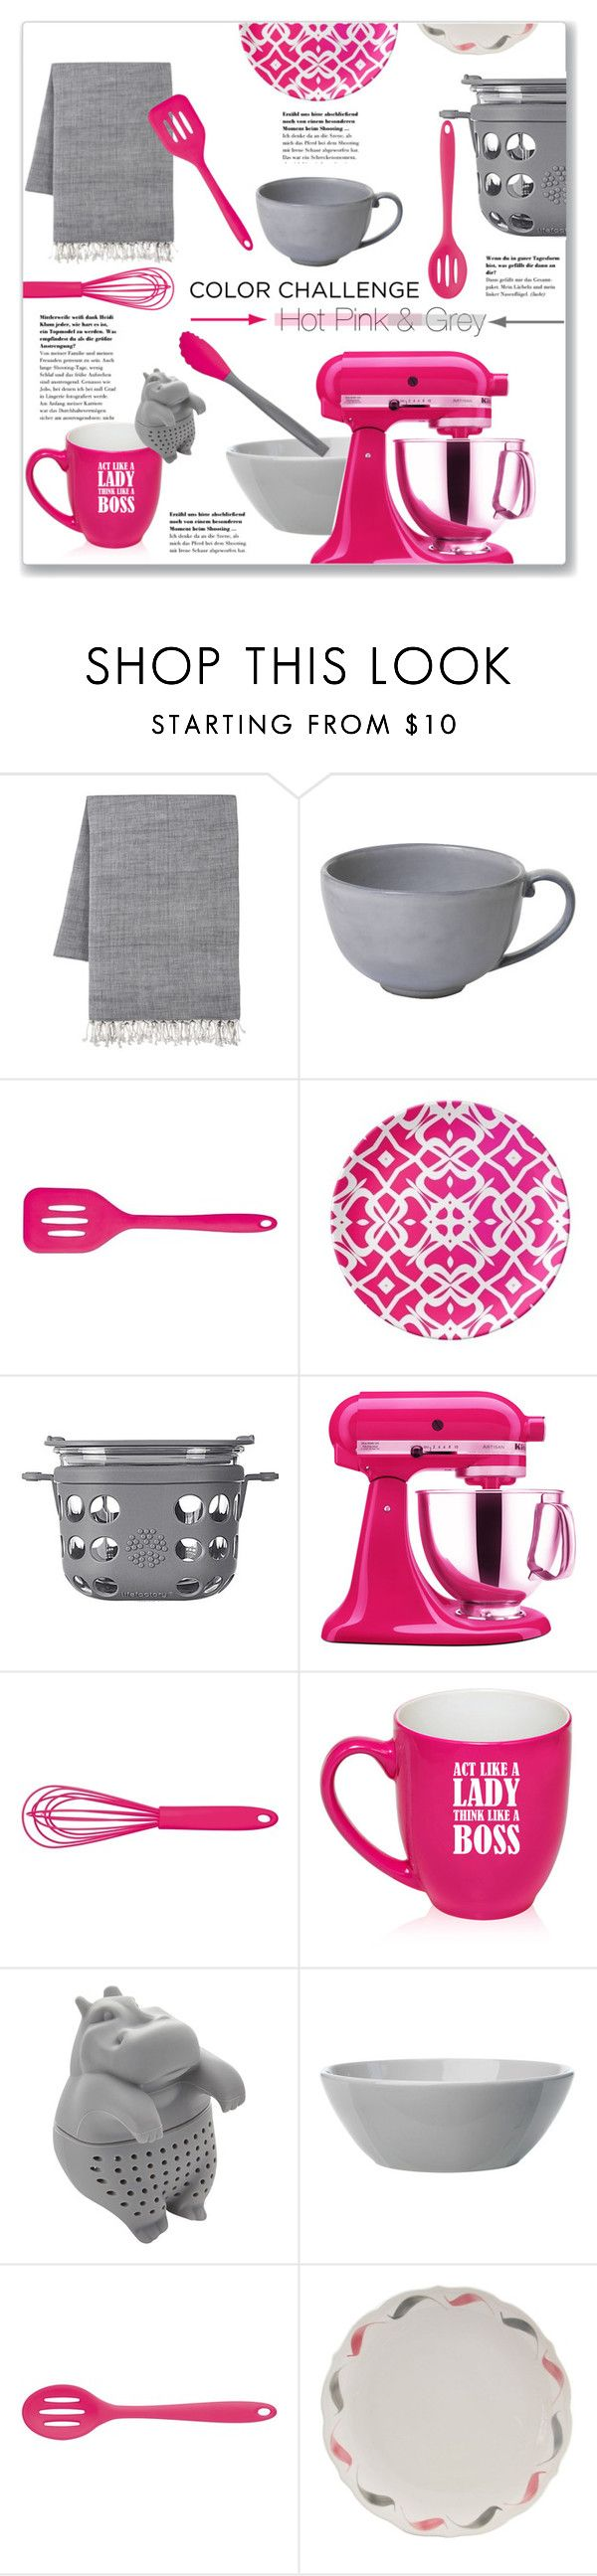 Hot Pink Grey Kitchen Accessories By Kellylynne68 Liked On Polyvore Featuring Interior Interiors Design Home Decor